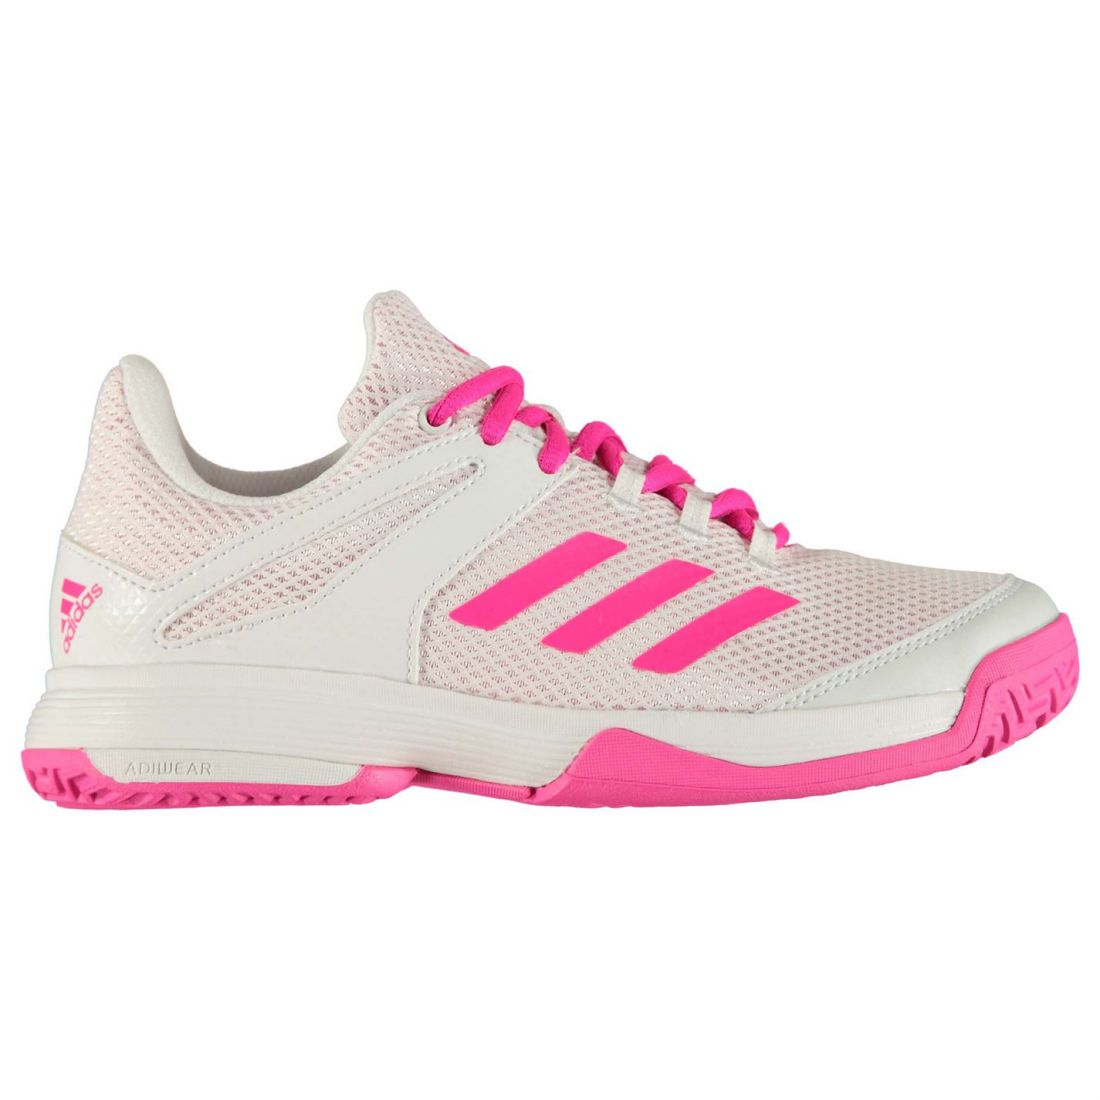 09c405b82eaf Details about adidas Kids Girls adiZero Club K Junior Tennis Shoes Lace Up  Padded Ankle Collar